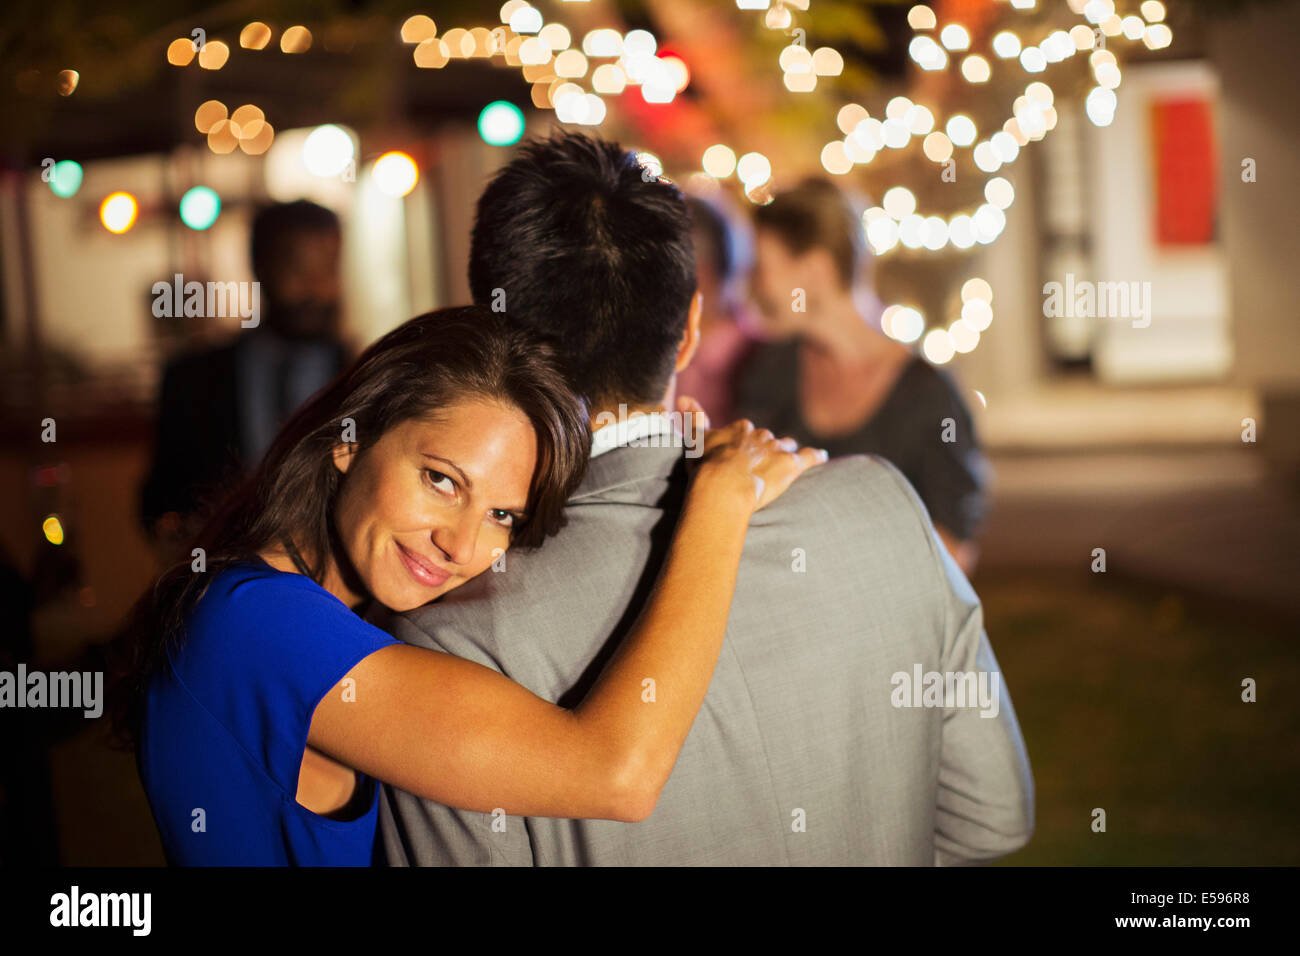 Couple hugging at party Photo Stock